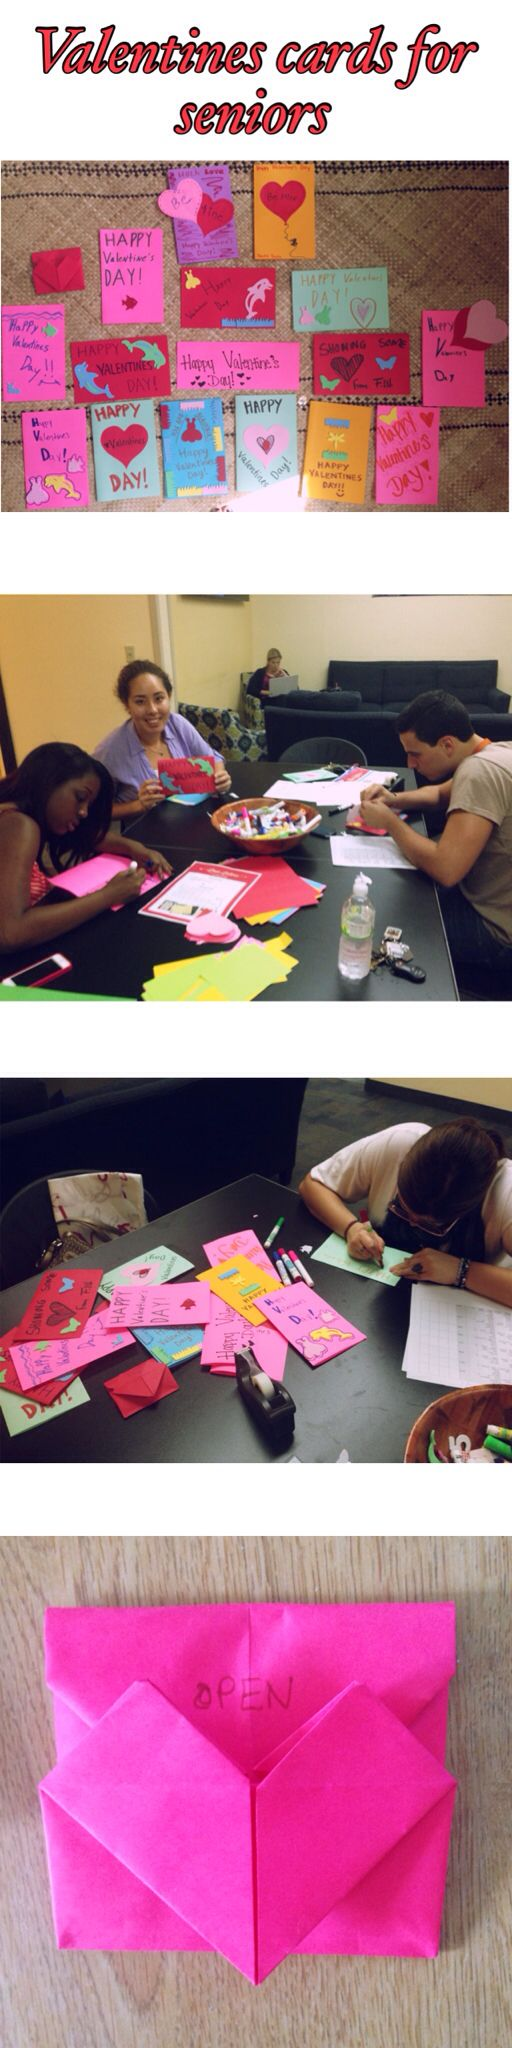 #RA #program #valentines Make Valentines Day Card for yourself, this could be a way of figuring yourself out